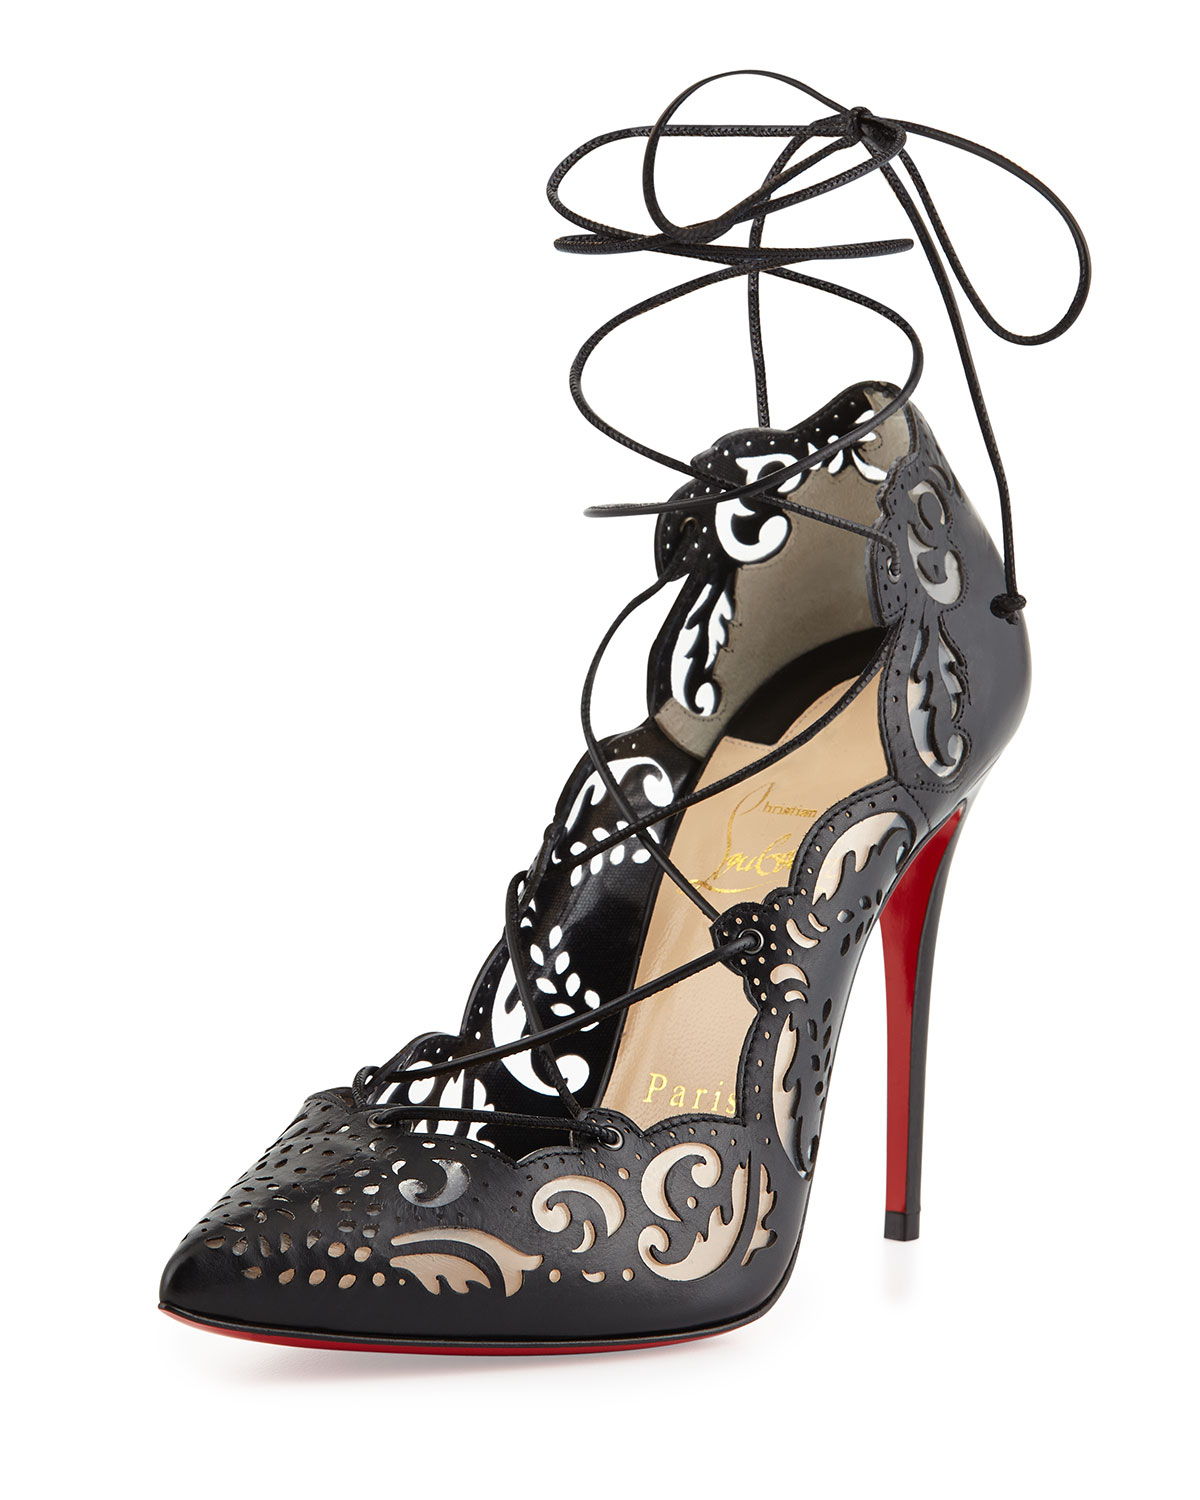 Christian louboutin Impera Laceup Lasercut Red Sole Pump Black in ...